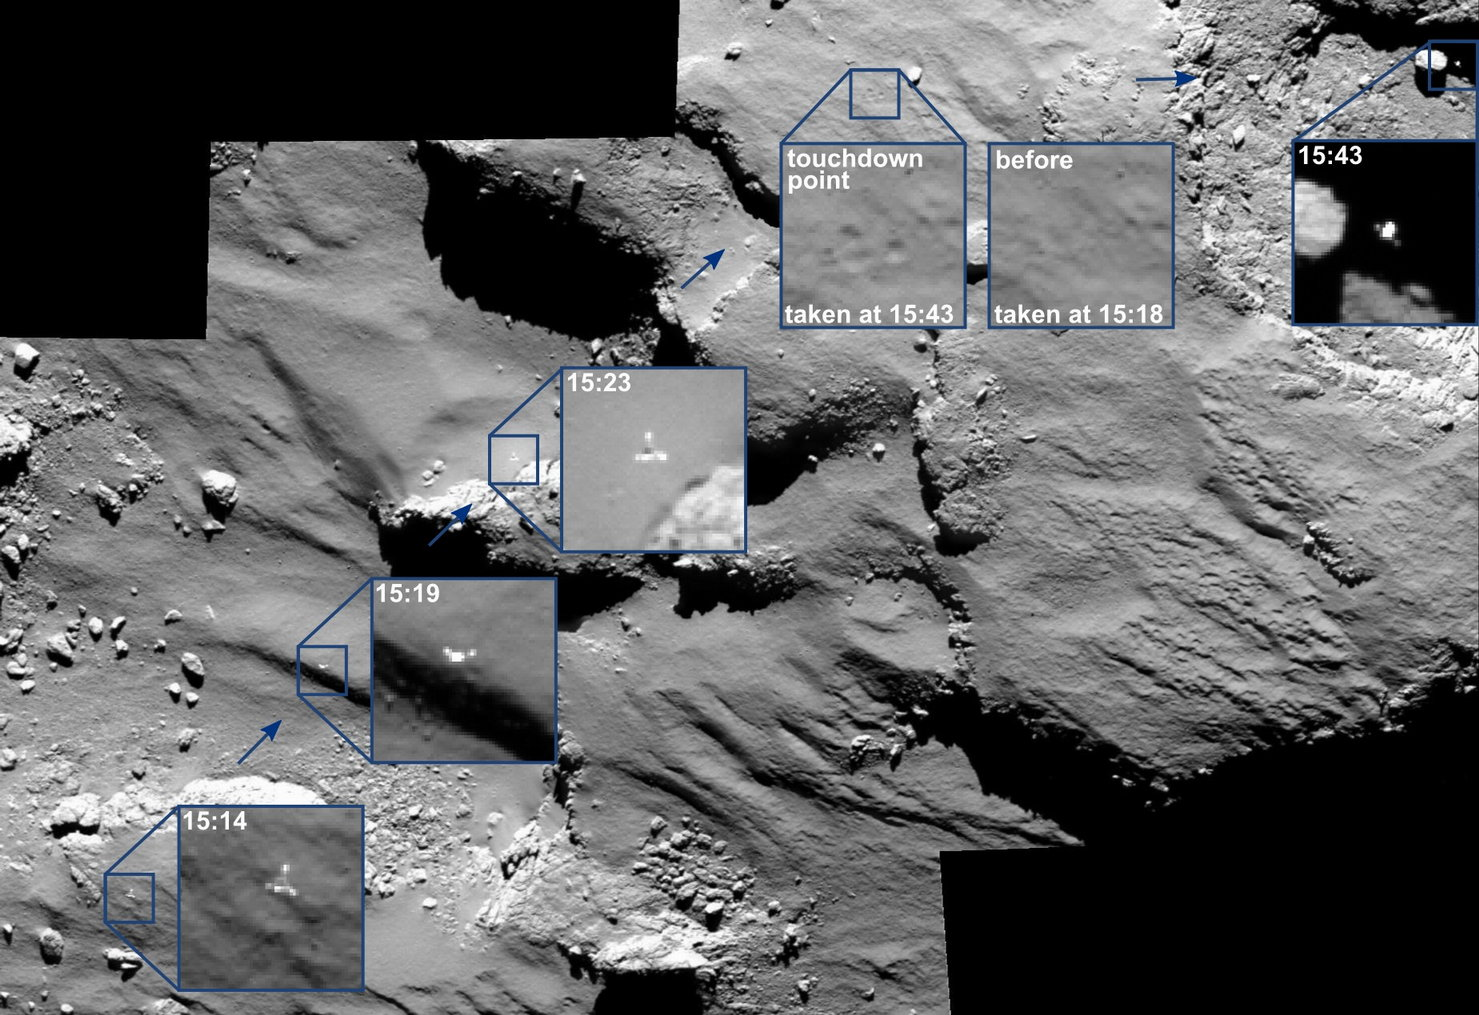 Rosetta's OSIRIS camera captured Philae's incredible journey as it approached, had its first touchdown, then bounced on Comet 67P/Churyumov–Gerasimenko on 12th November 2014. Image credit: ESA/Rosetta/MPS for OSIRIS Team MPS/UPD/LAM/IAA/SSO/INTA/UPM/DASP/IDA